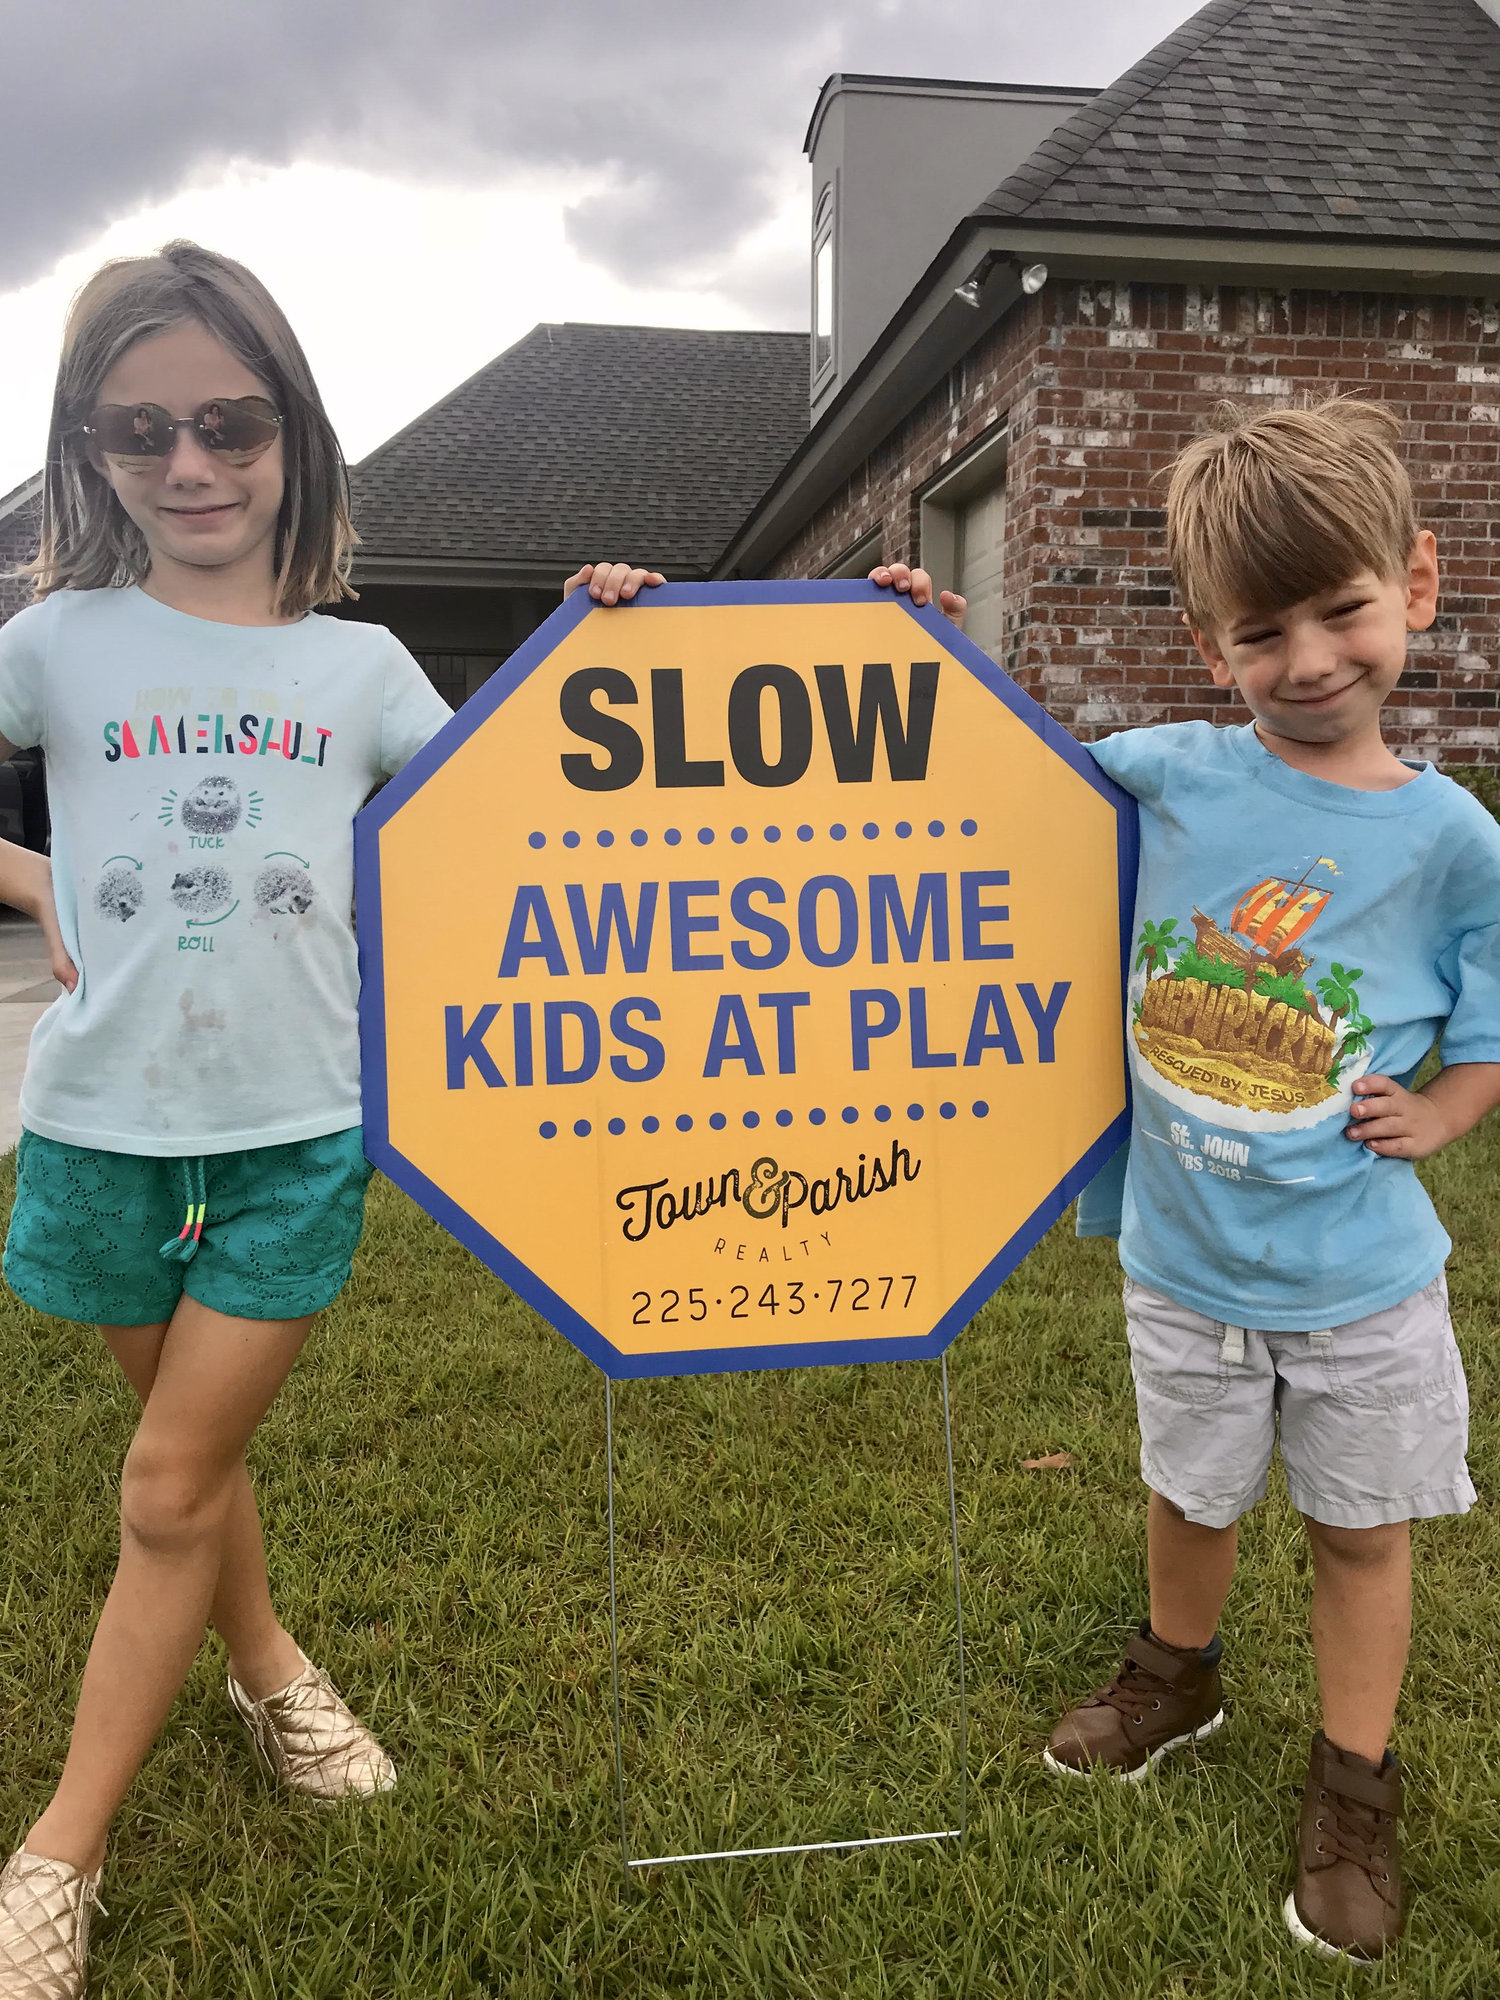 amazing kids at play in prairieville, town and parish realty kids at play